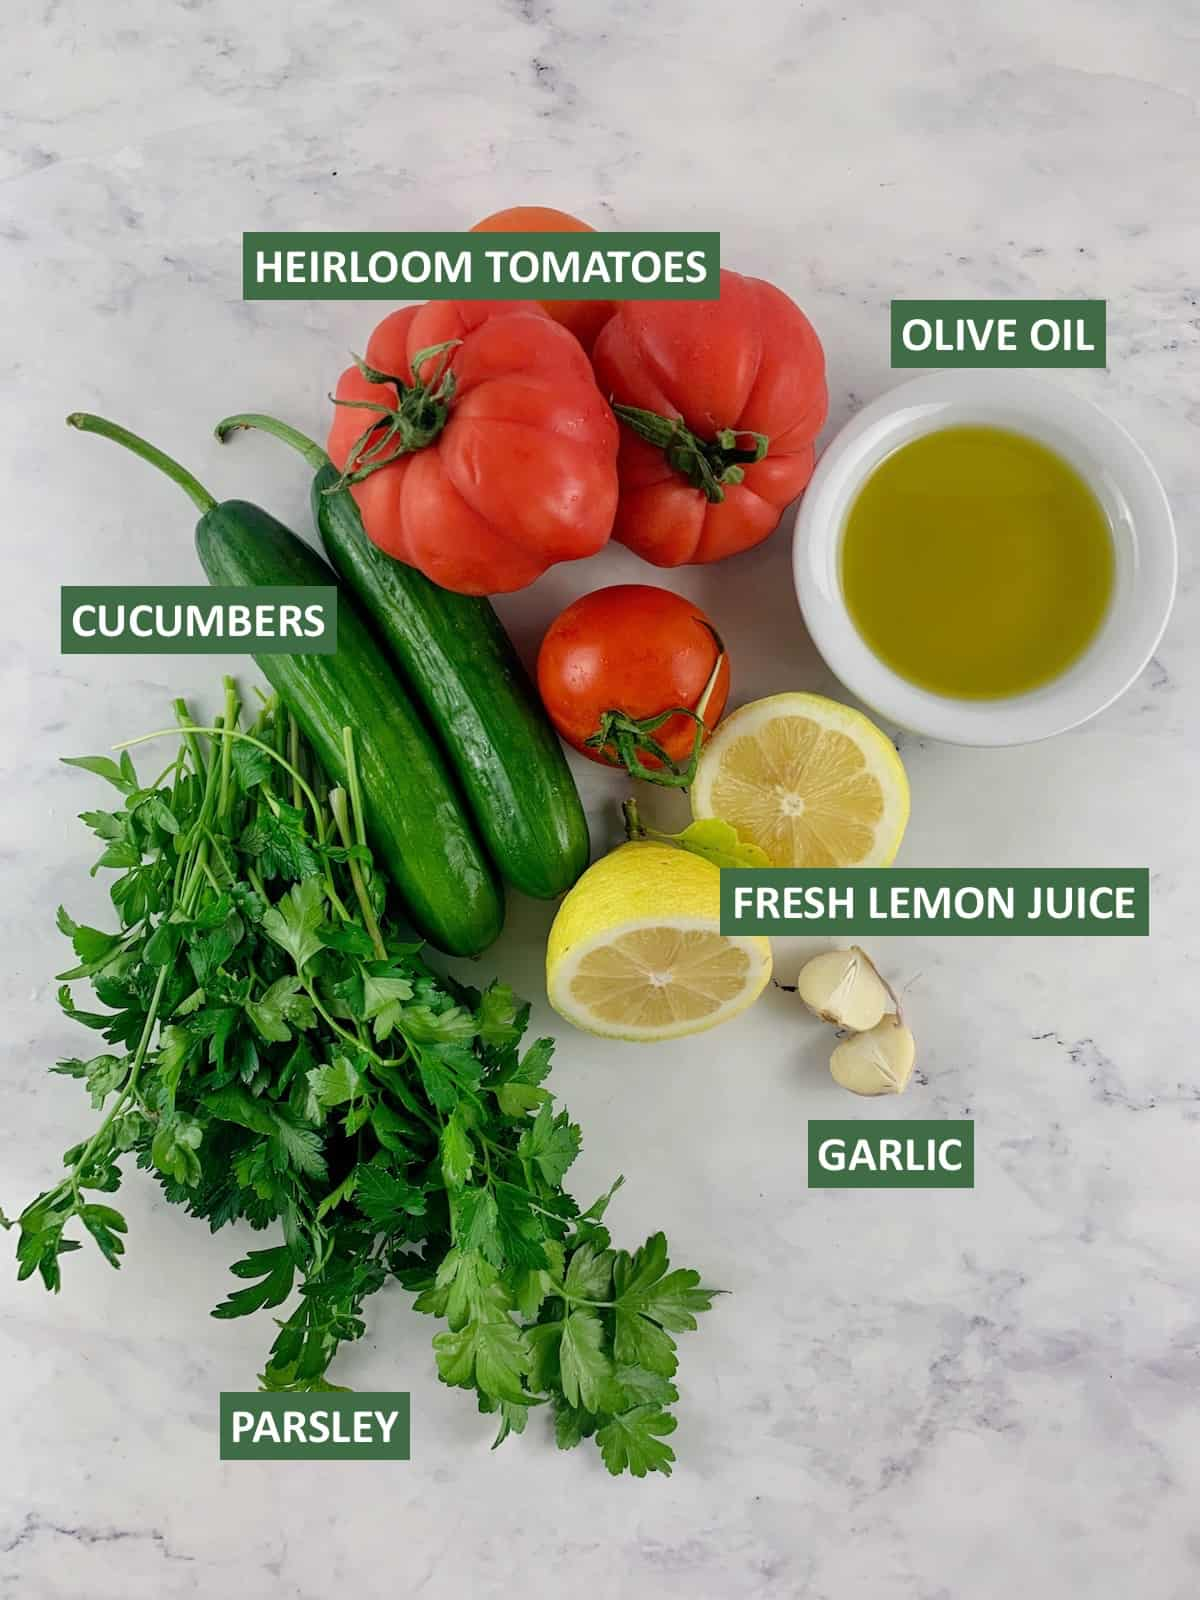 LABELLED INGREDIENTS TO MAKE MEDITERRANEAN TOMATO AND CUCUMBER SALAD I